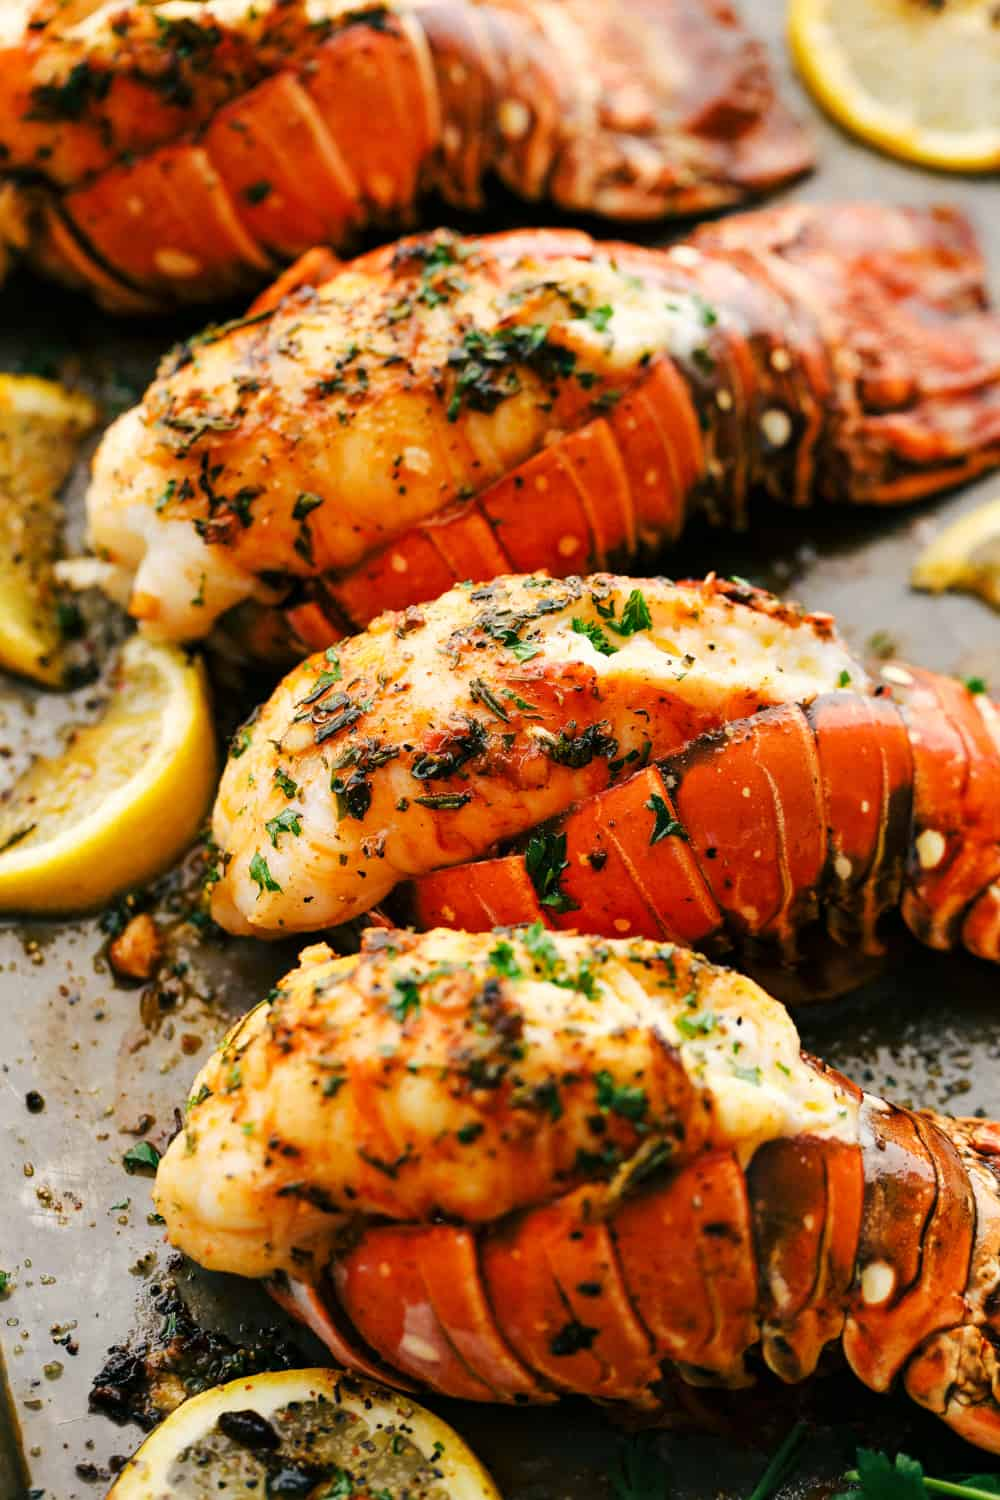 The Best Lobster Tail Recipe Ever is a decadent dinner made with large lobster tails smothered with a buttery garlic herb sauce then broiledunder high heat making these lobster tails tender and juicy. The ultimateindulgence!